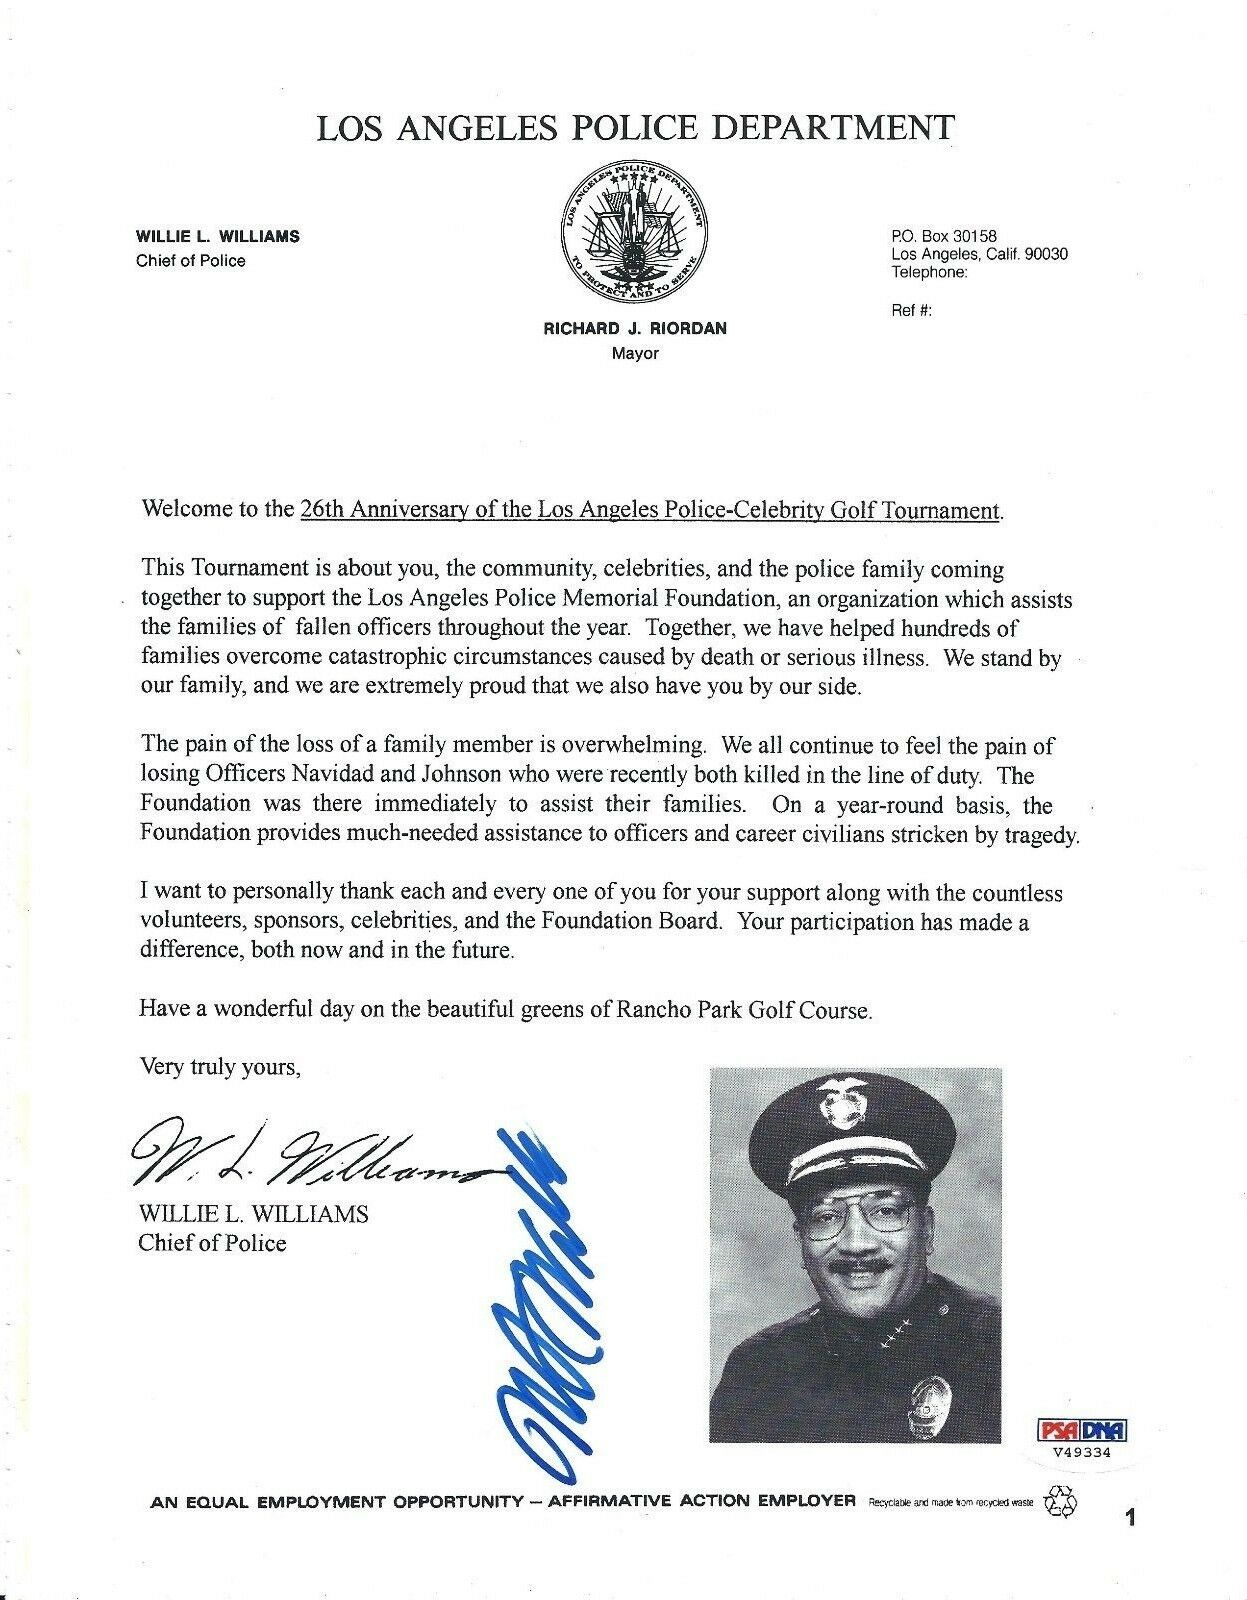 Willie Williams Signed LA Police-Celebrity Golf Tournament Fact Sheet PSA